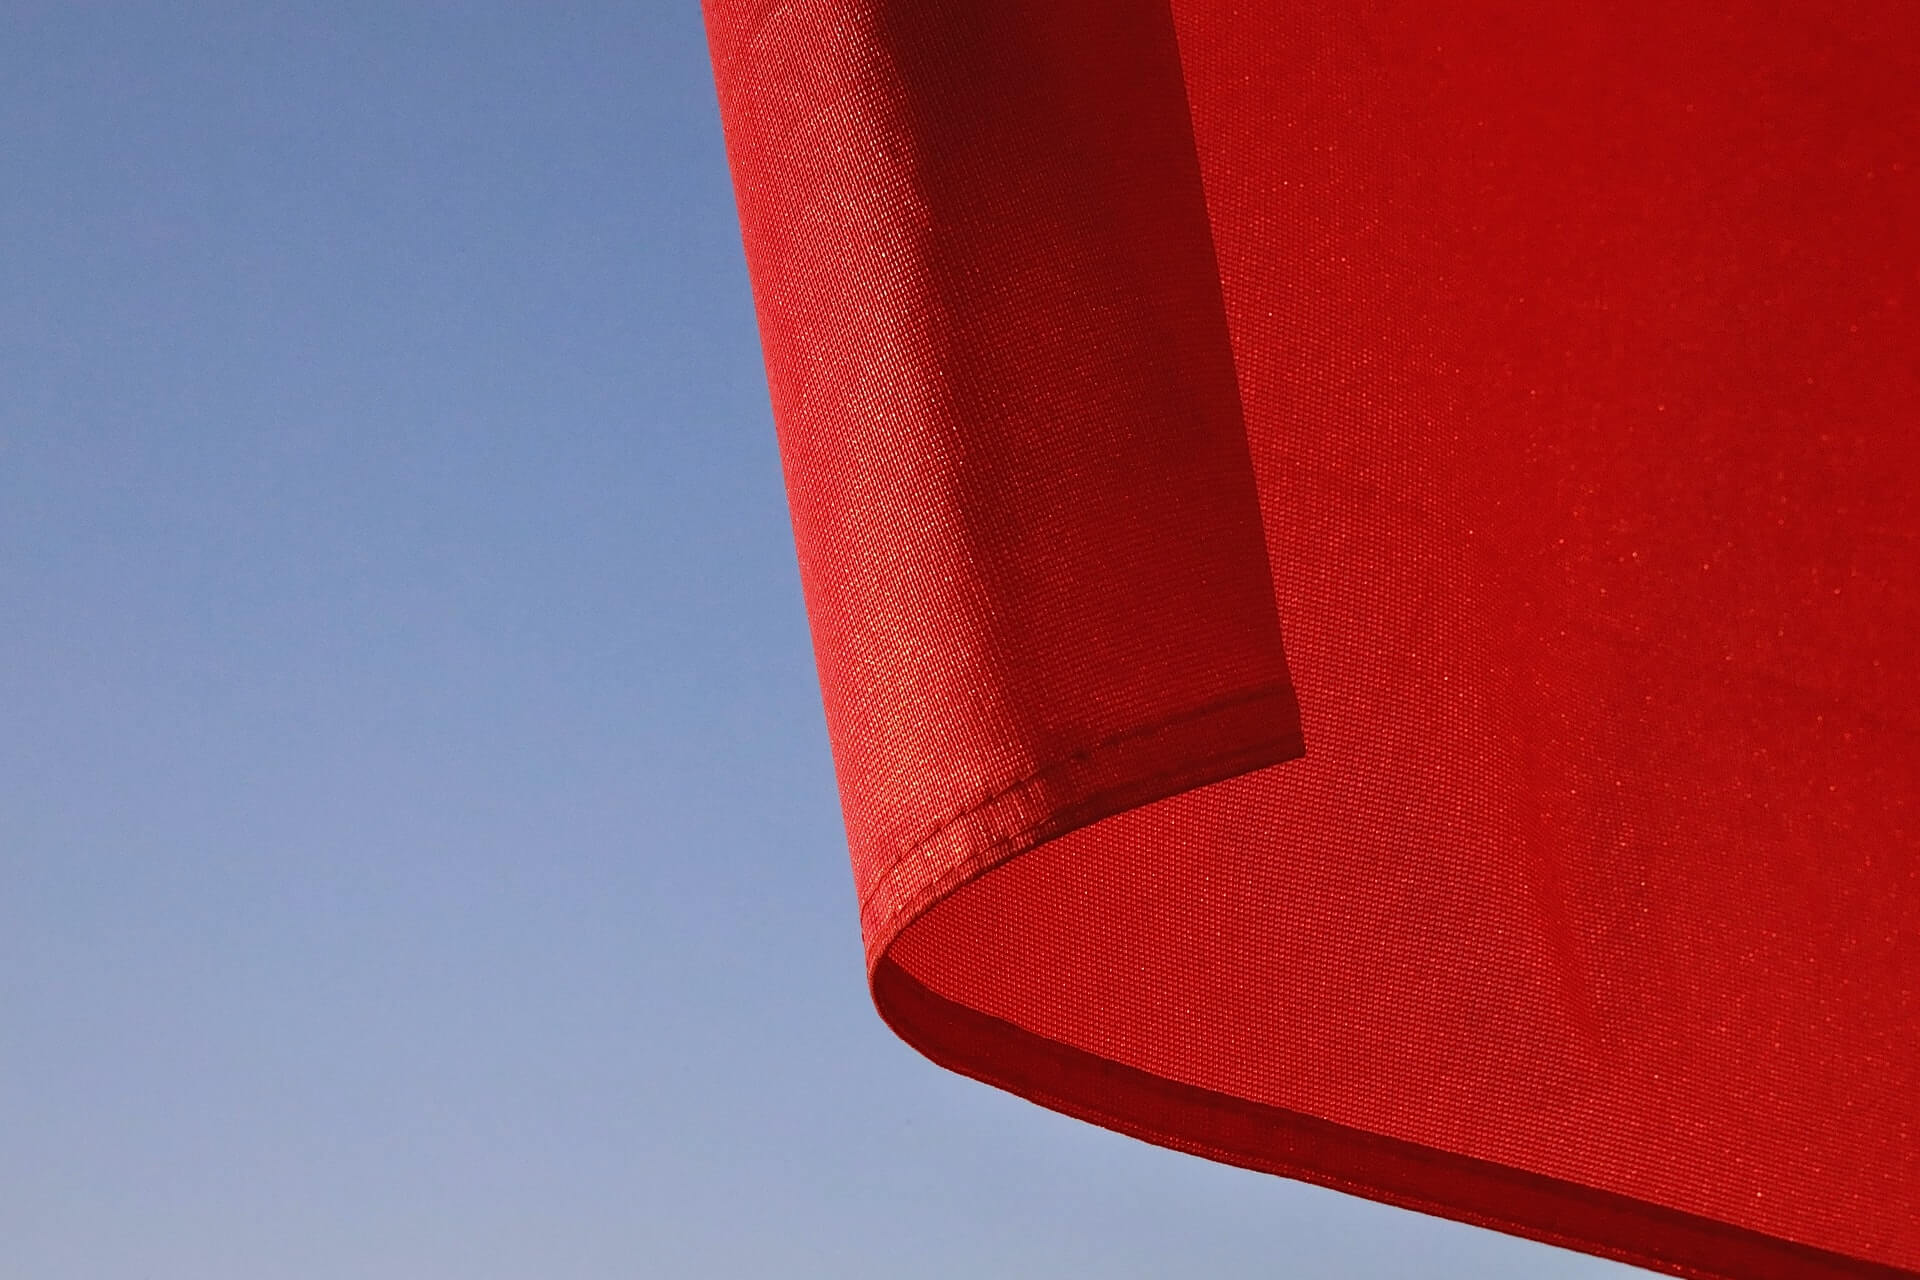 Spotting Red Flags In Your Finances